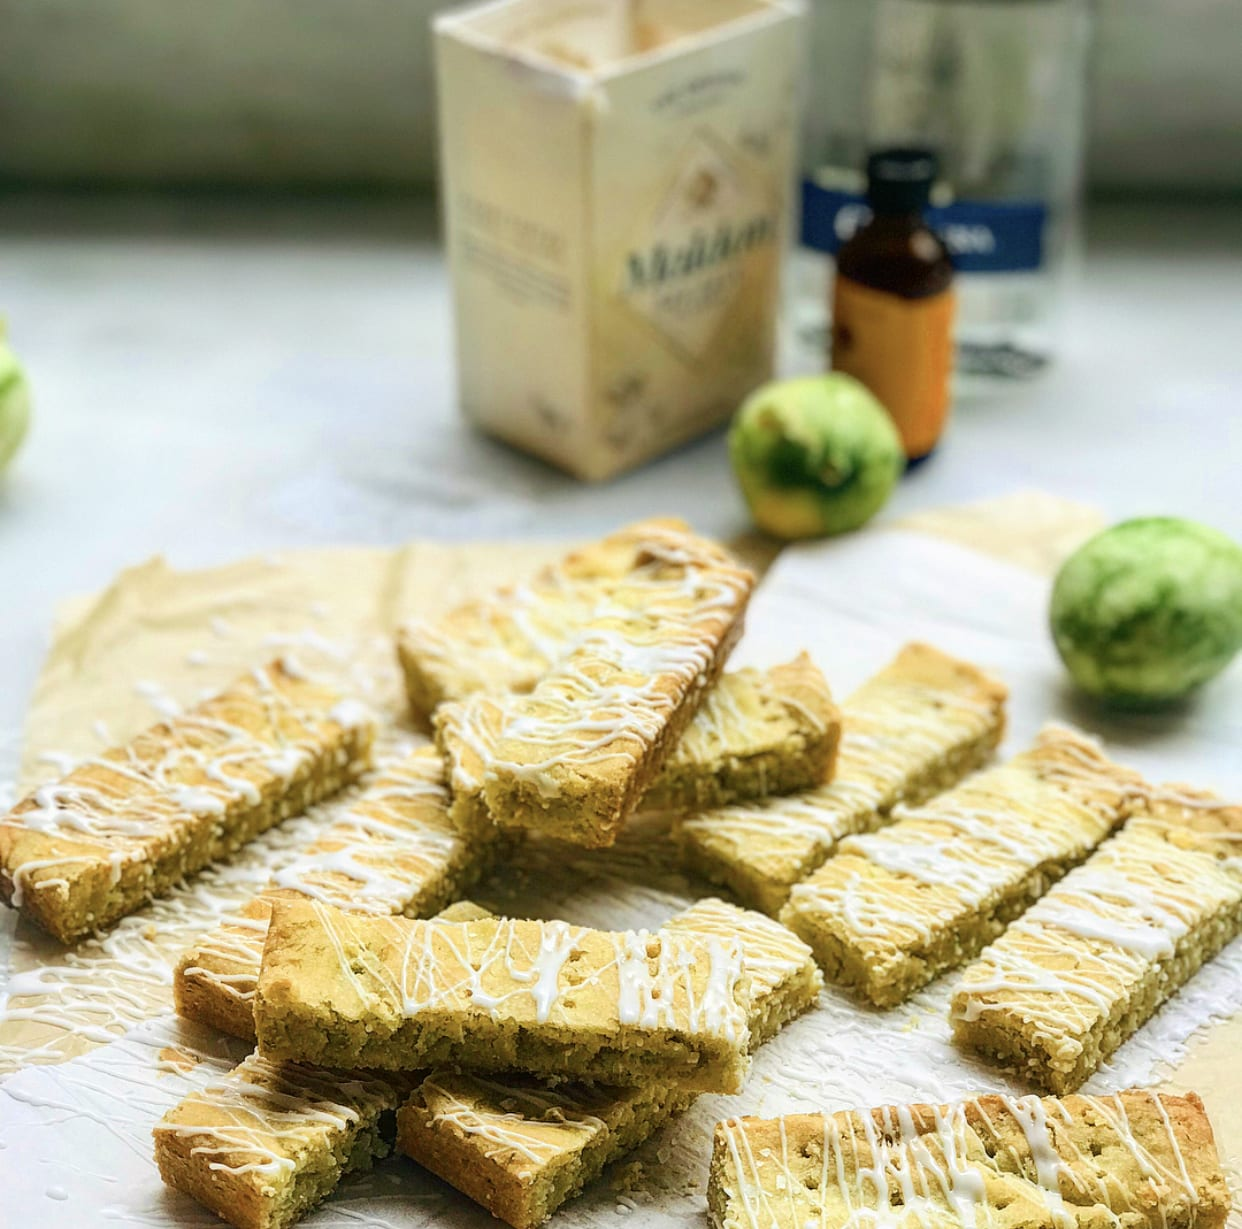 Margarita Shortbread Cookies with Orange Tequila Glaze | Jessie Sheehan Bakes